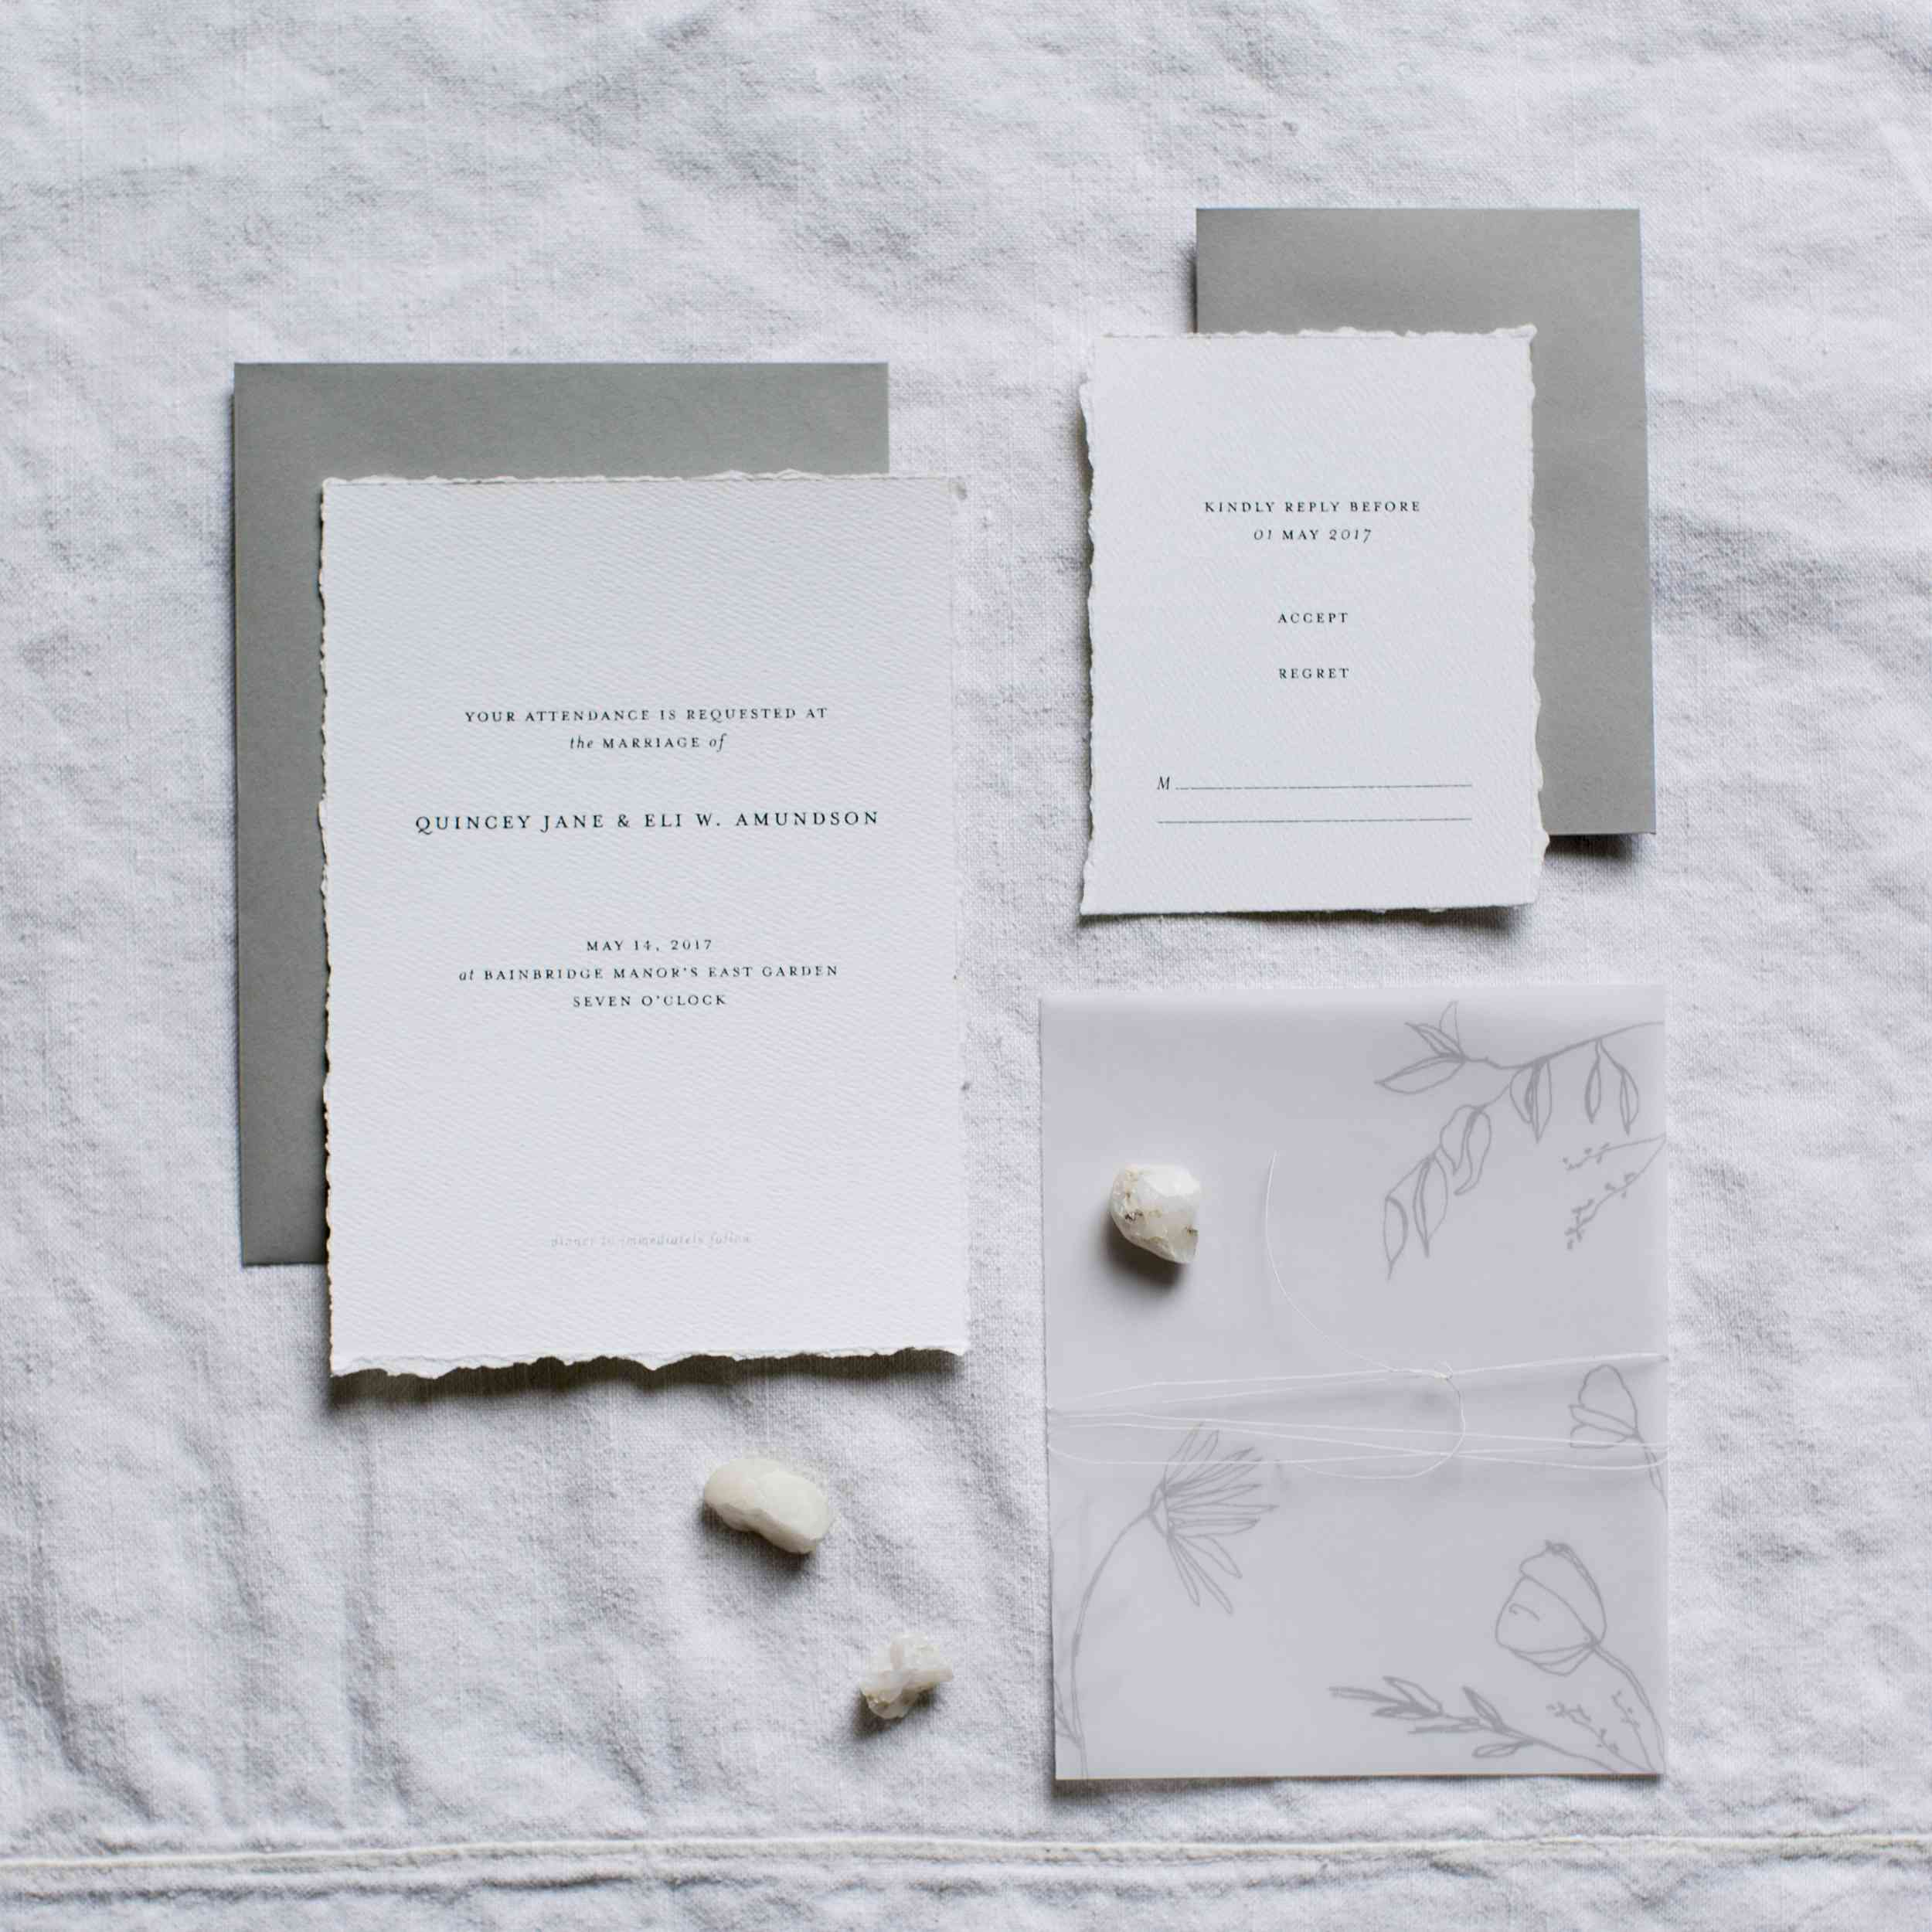 8 Elegant Wedding Invitations To Set The Tone For Your Ceremony In Style